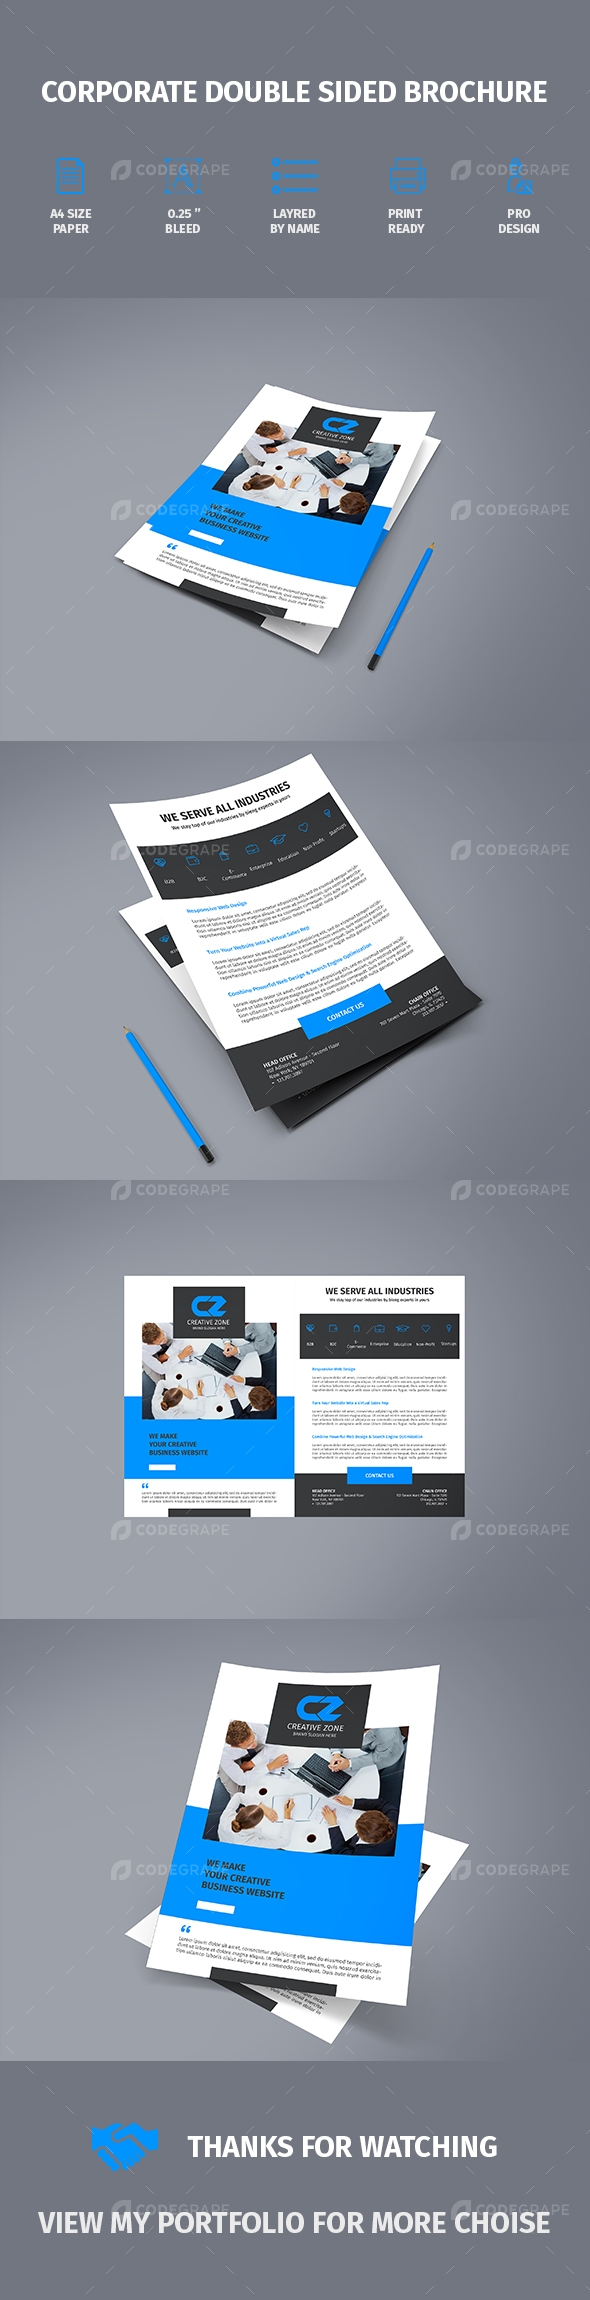 Corporate Double Sided Brochure